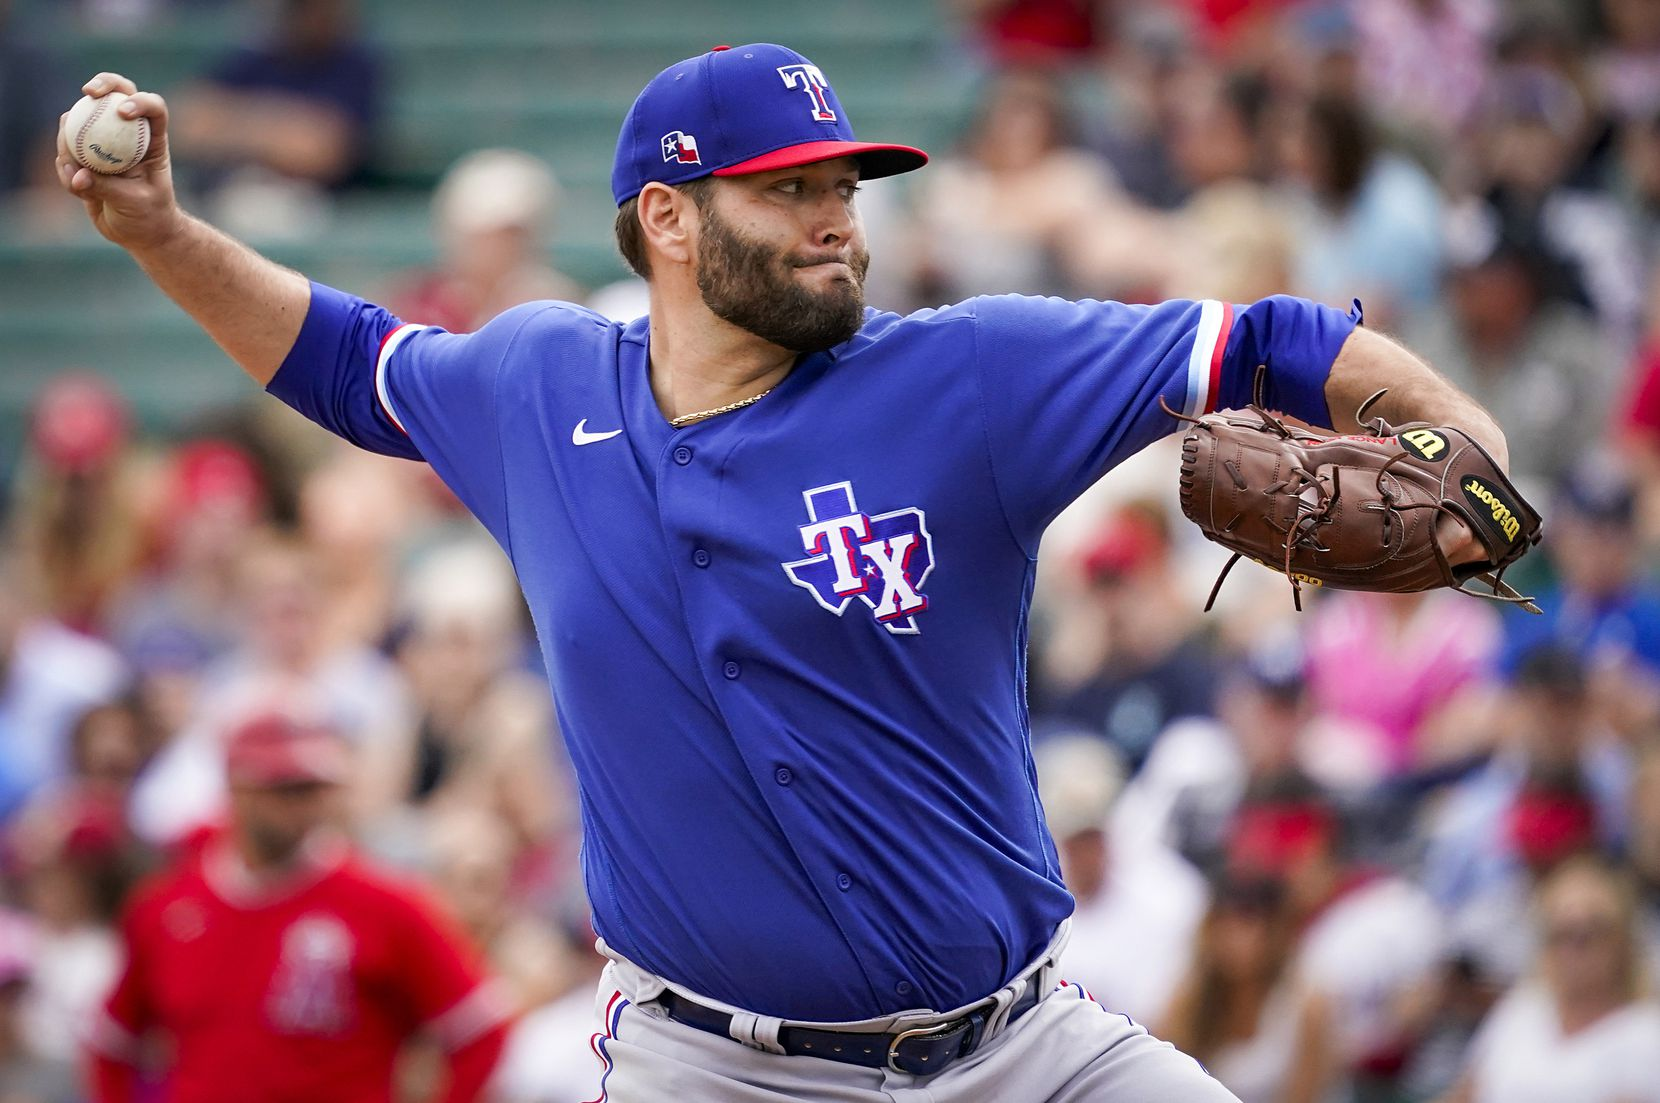 Texas Rangers pitcher Lance Lynn pitches during the first inning of a spring training game against the Los Angeles Angels at Tempe Diablo Stadium on Friday, Feb. 28, 2020, in Tempe, Ariz.